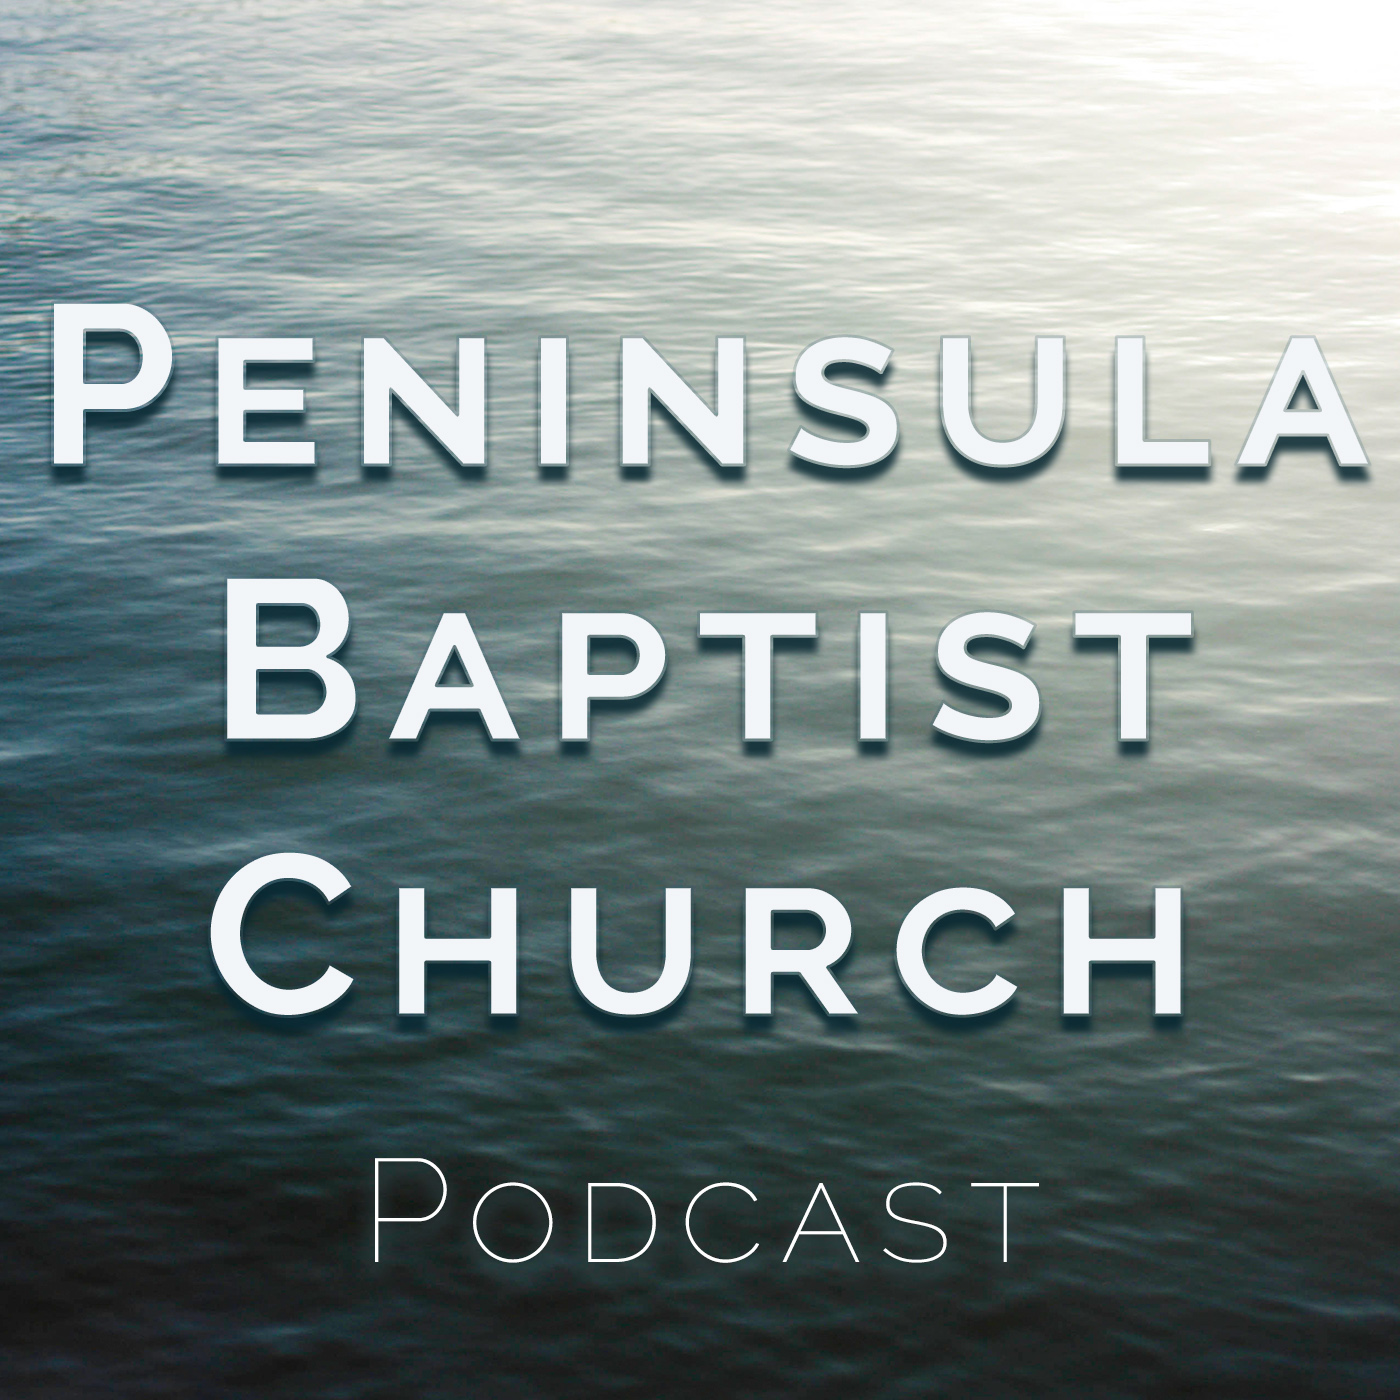 Peninsula Baptist Church